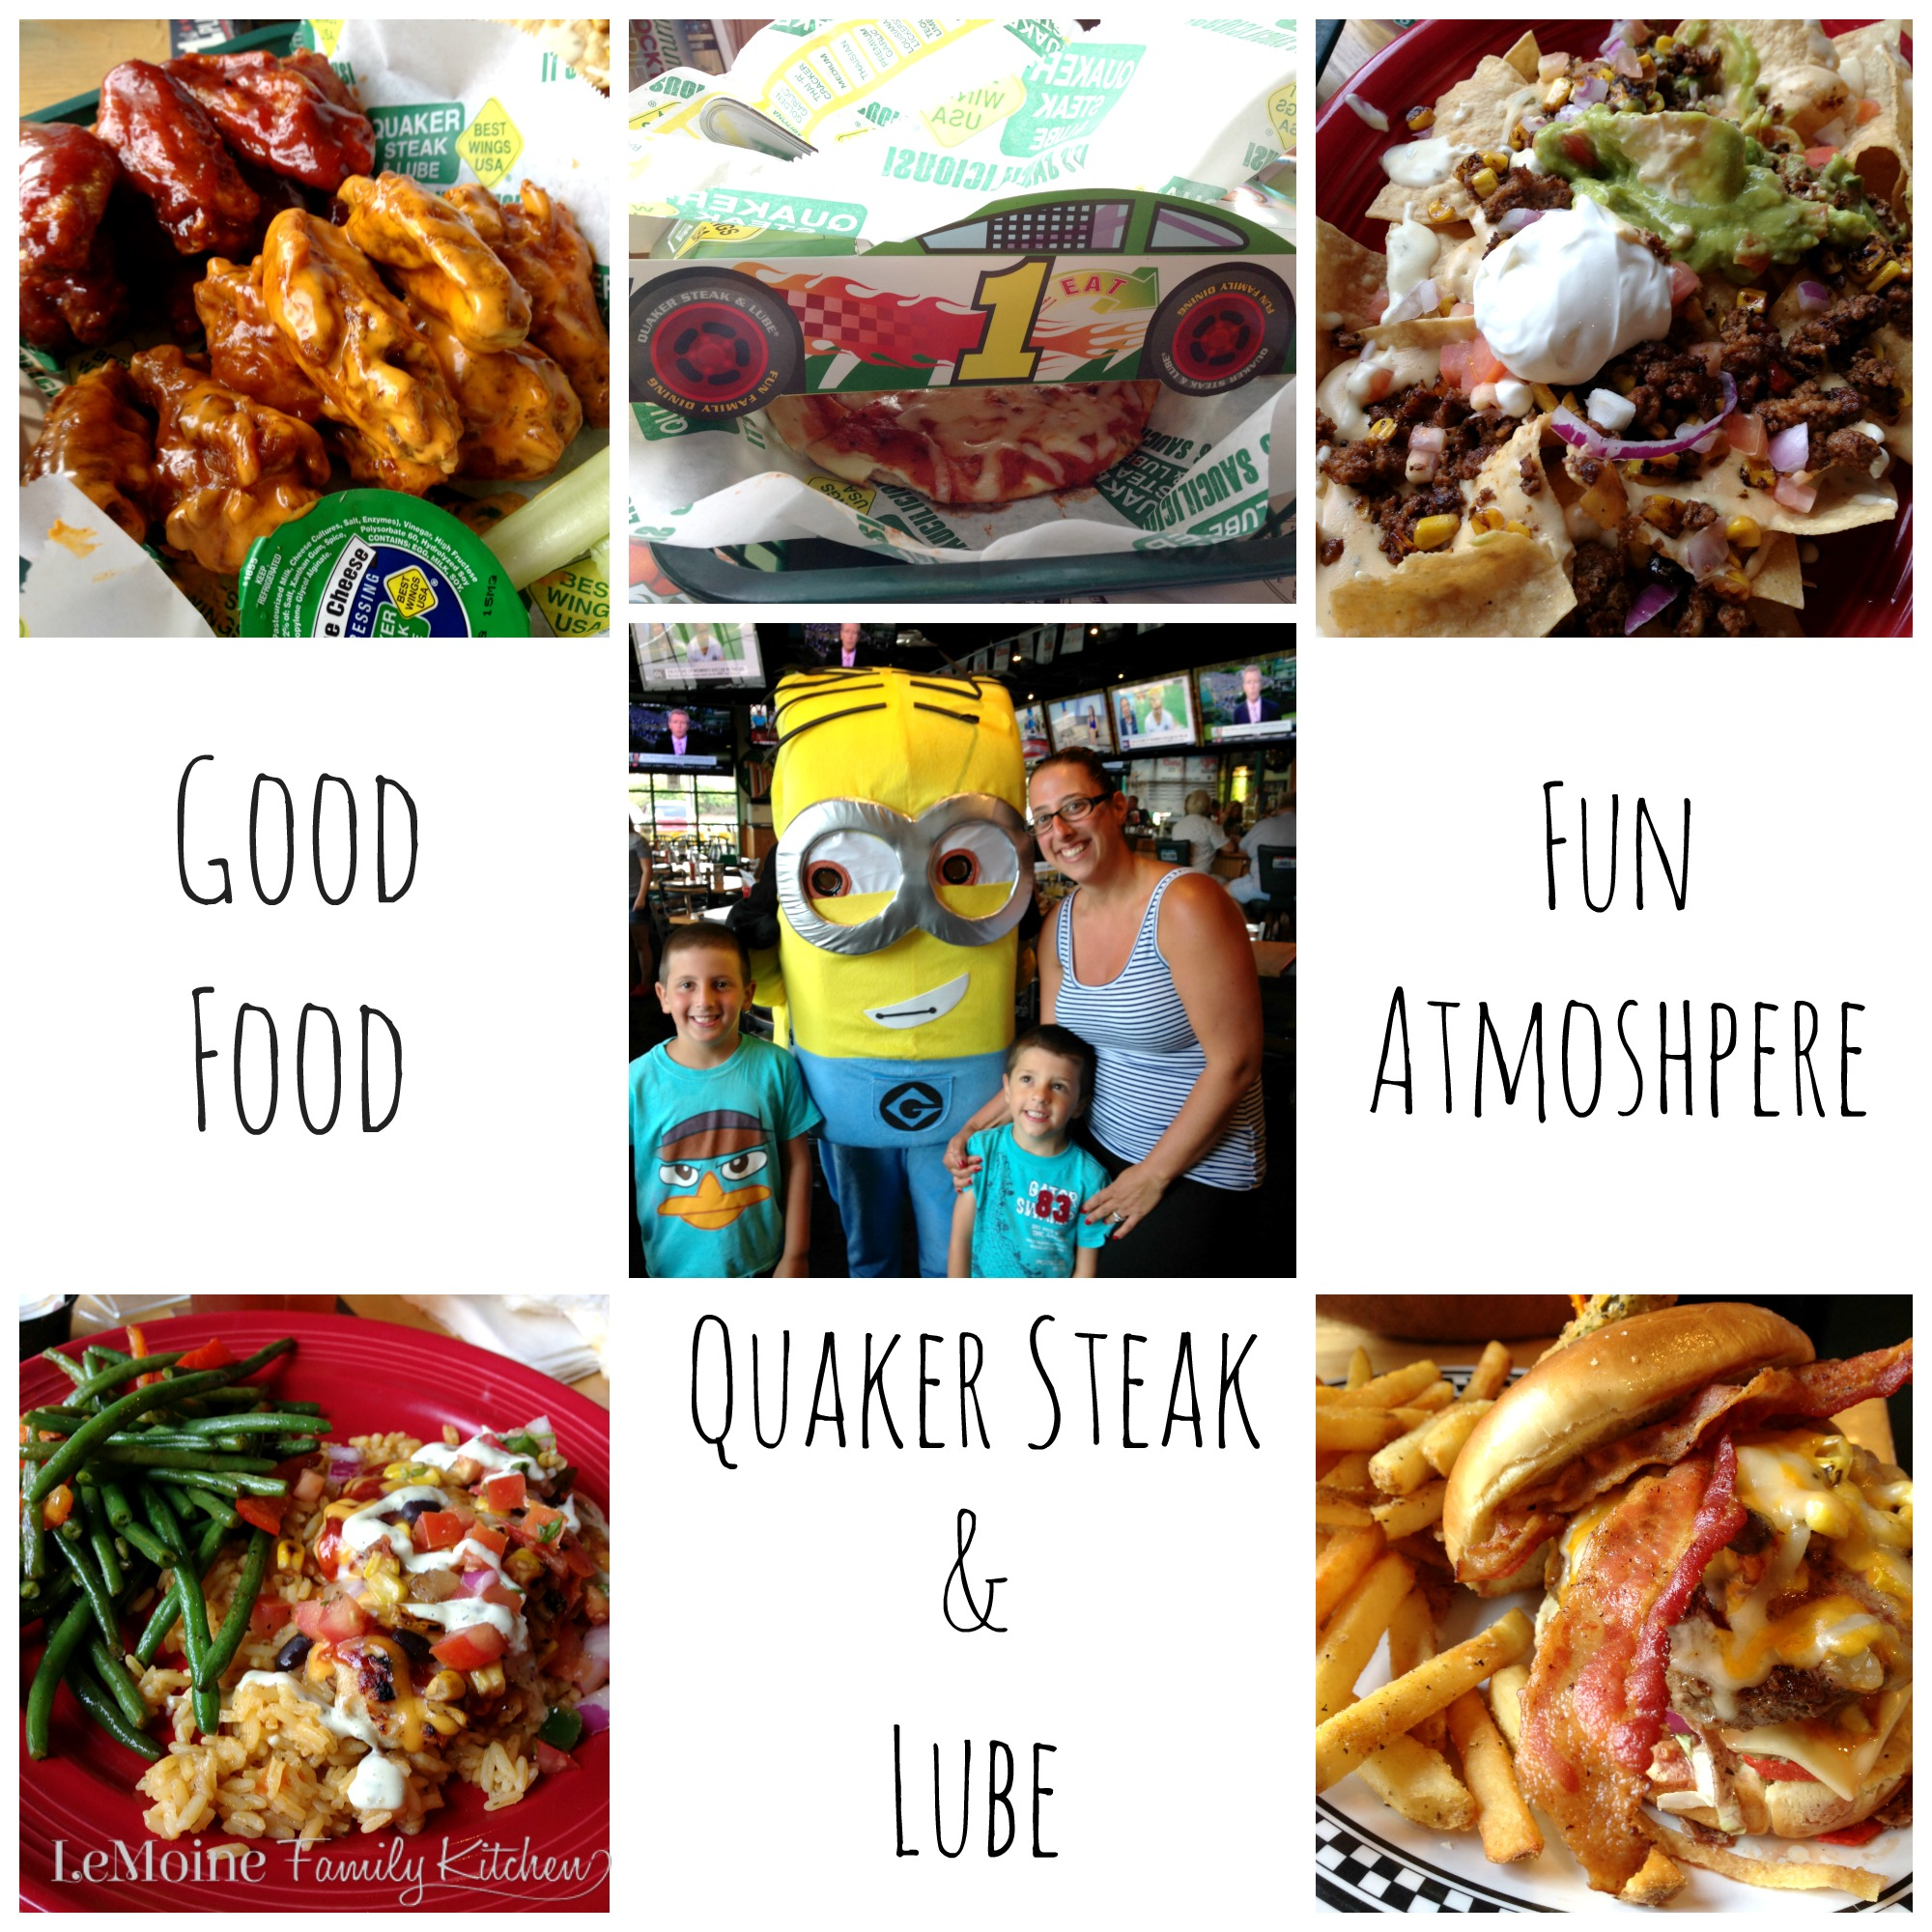 Our Family Night Out at Quaker Steak & Lube- Brick NJ